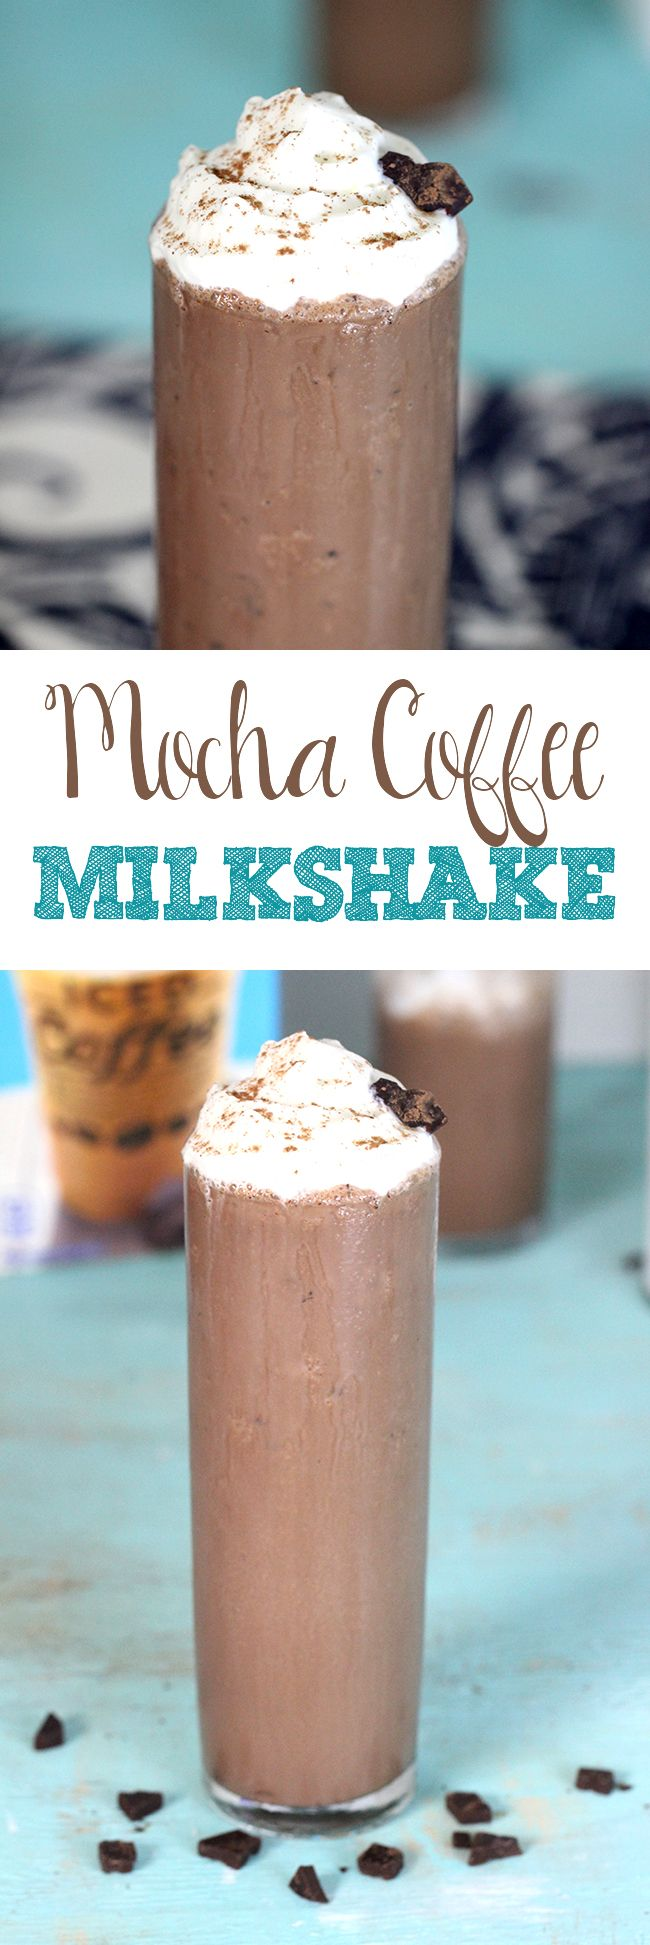 "Drool Time! Can't remember the last time I made a milkshake just for me!! ""Me Time"" Mocha Coffee Milkshake ‪#‎IDelightin10‬ ‪#‎ad"